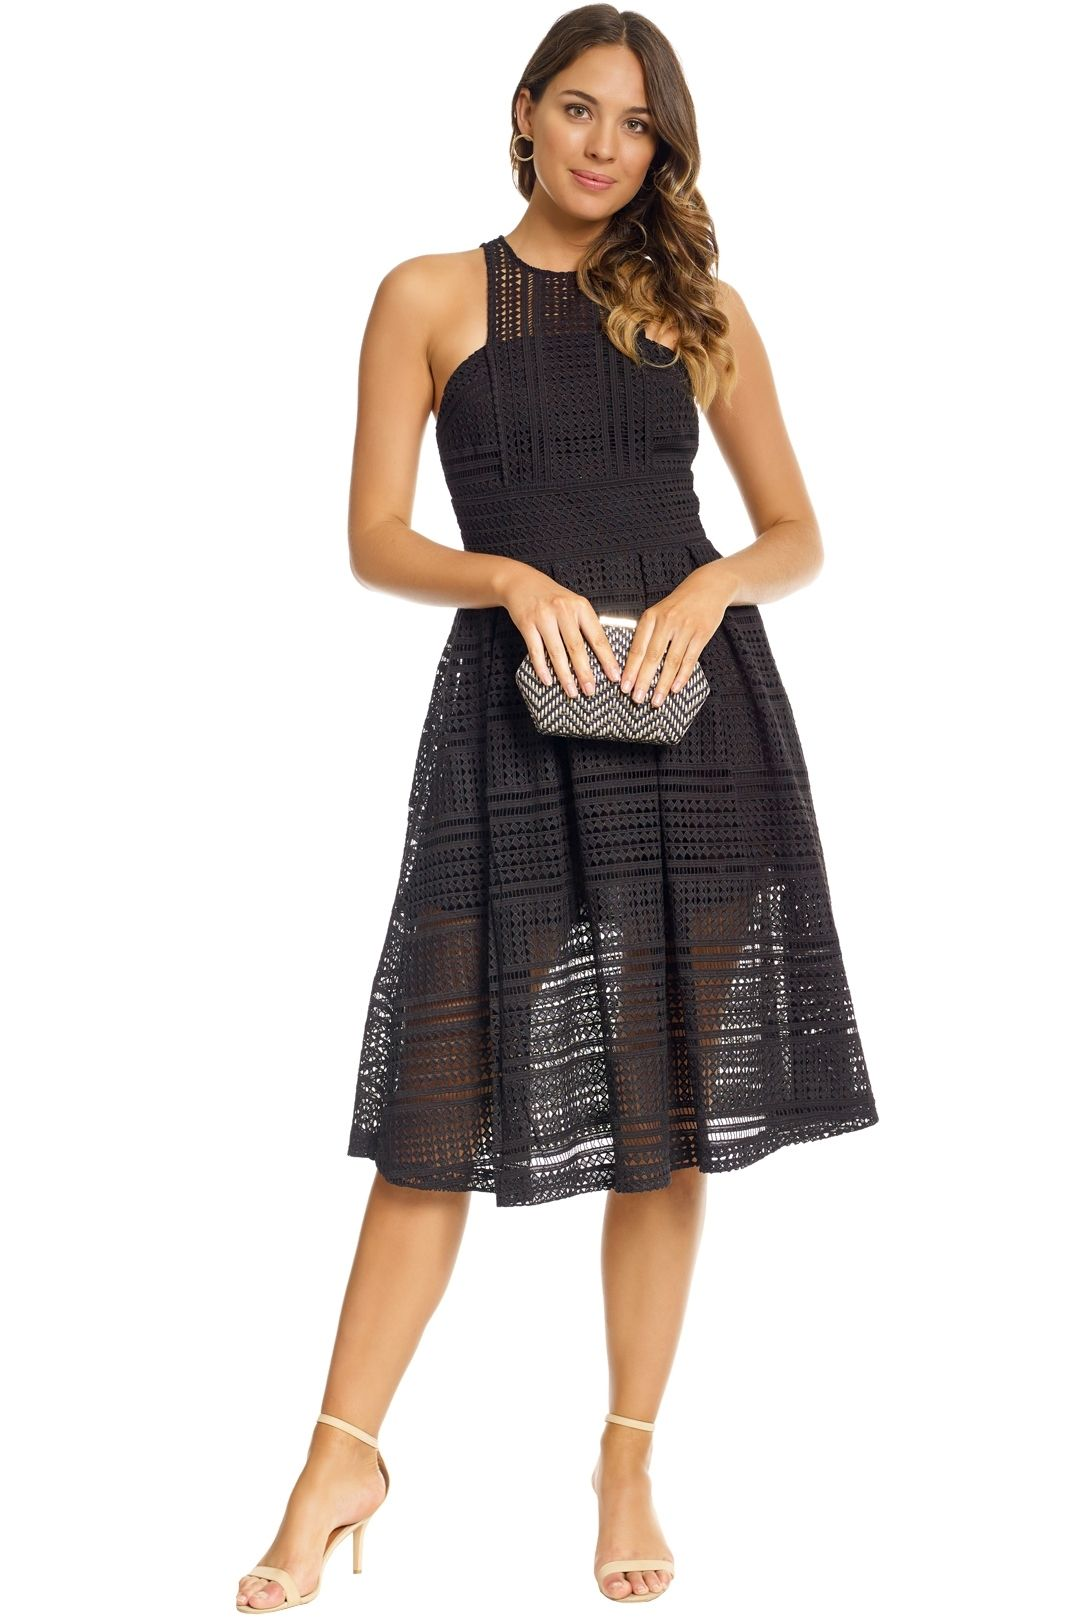 Grace and Hart - Allure Floaty Dress - Black - Front